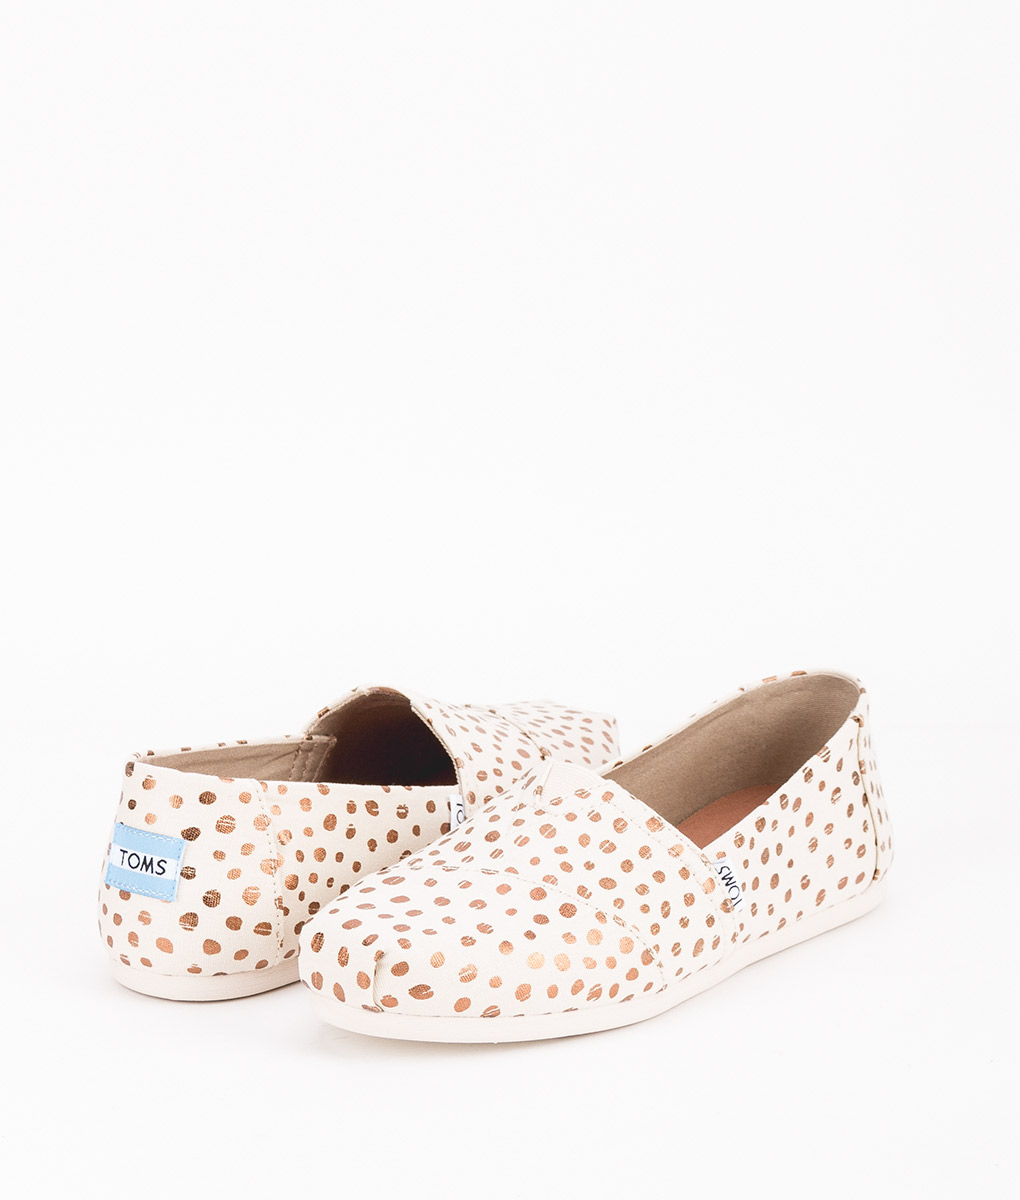 TOMS Women Espadrilles 11646 CANVAS DOTS W, Rose Gold Natural 55.99 1